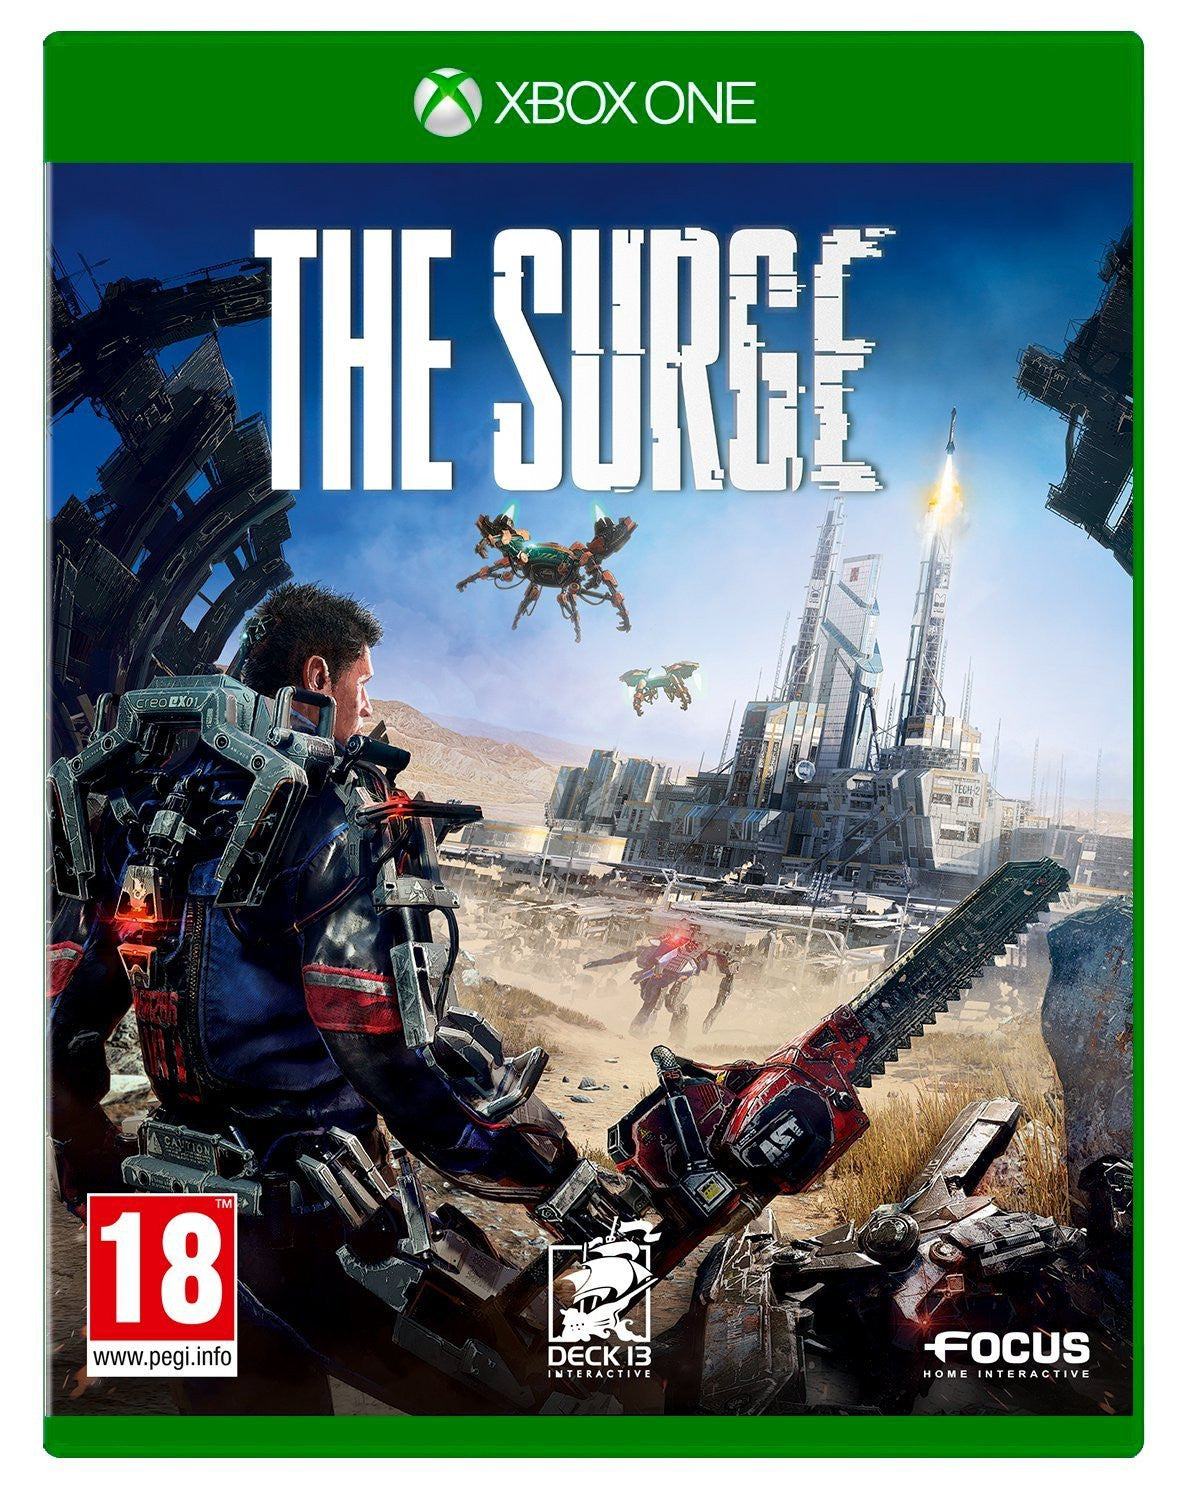 The Surge - Xbox One - Video Games by Focus Home Interactive The Chelsea Gamer